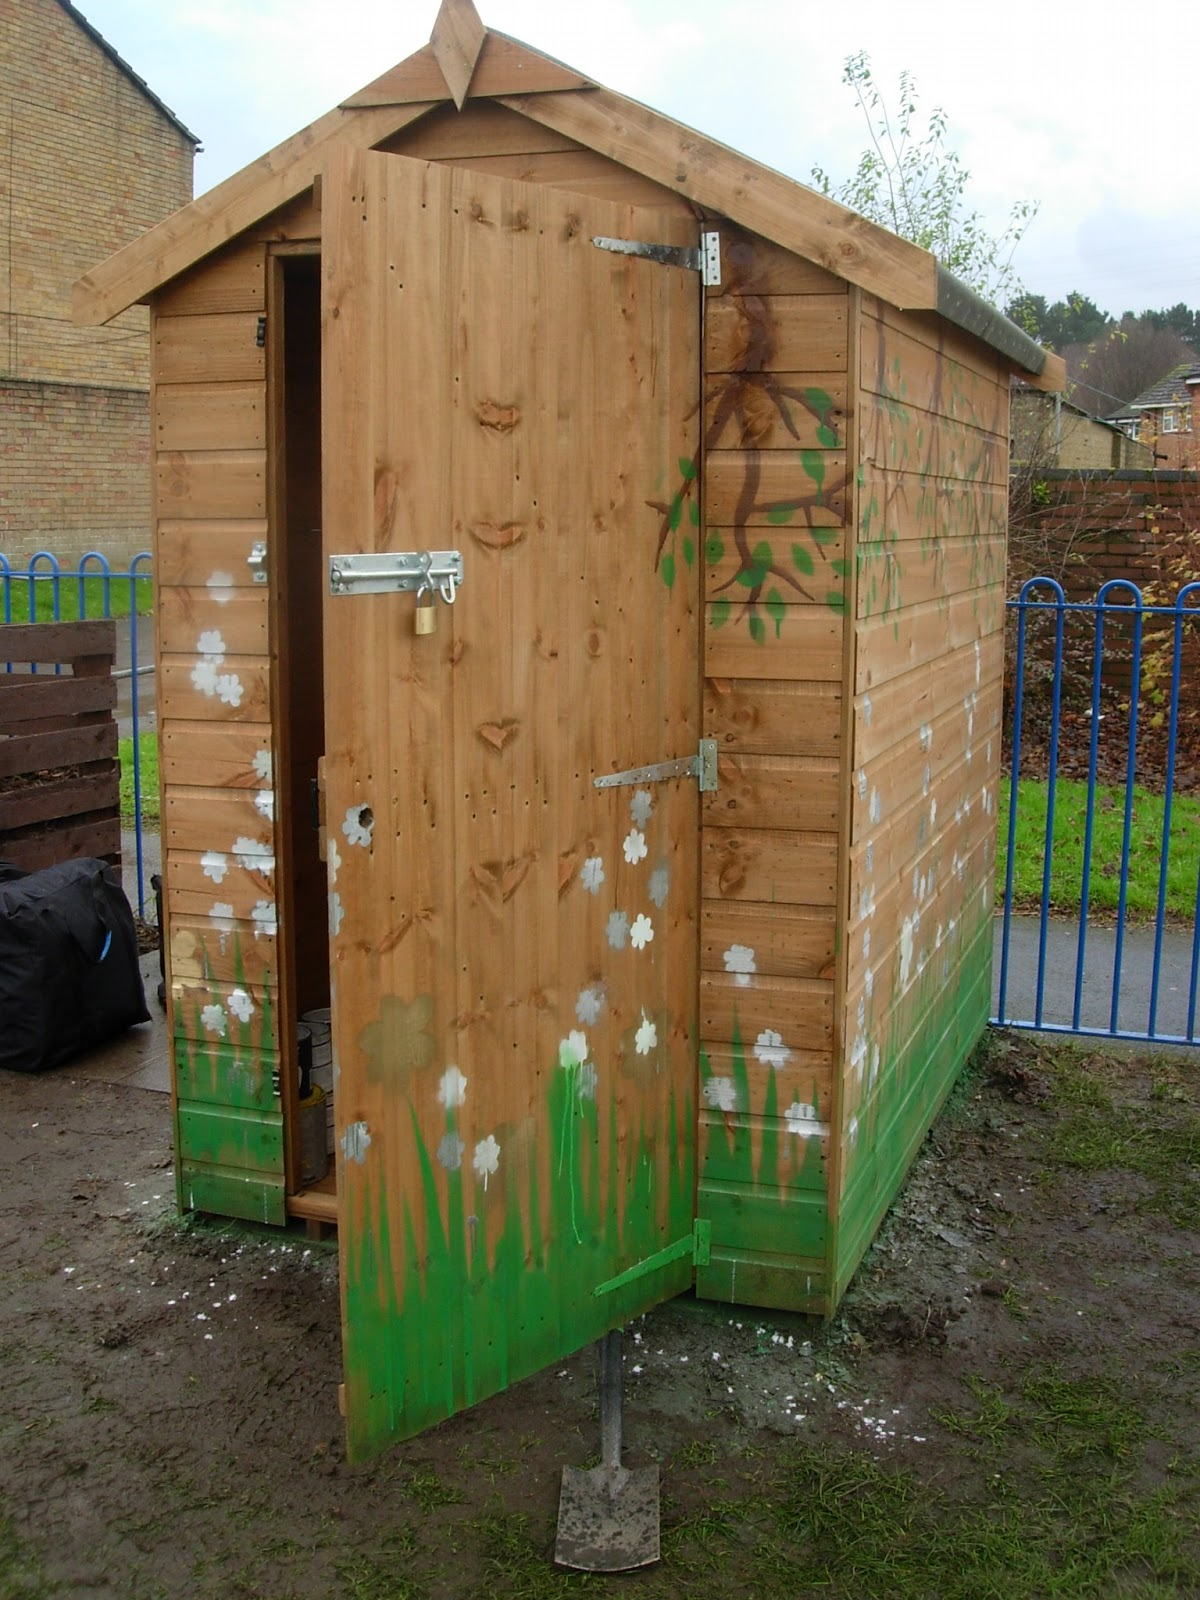 Turlin Moore Community Garden Shed Painting Rose Perry Arts